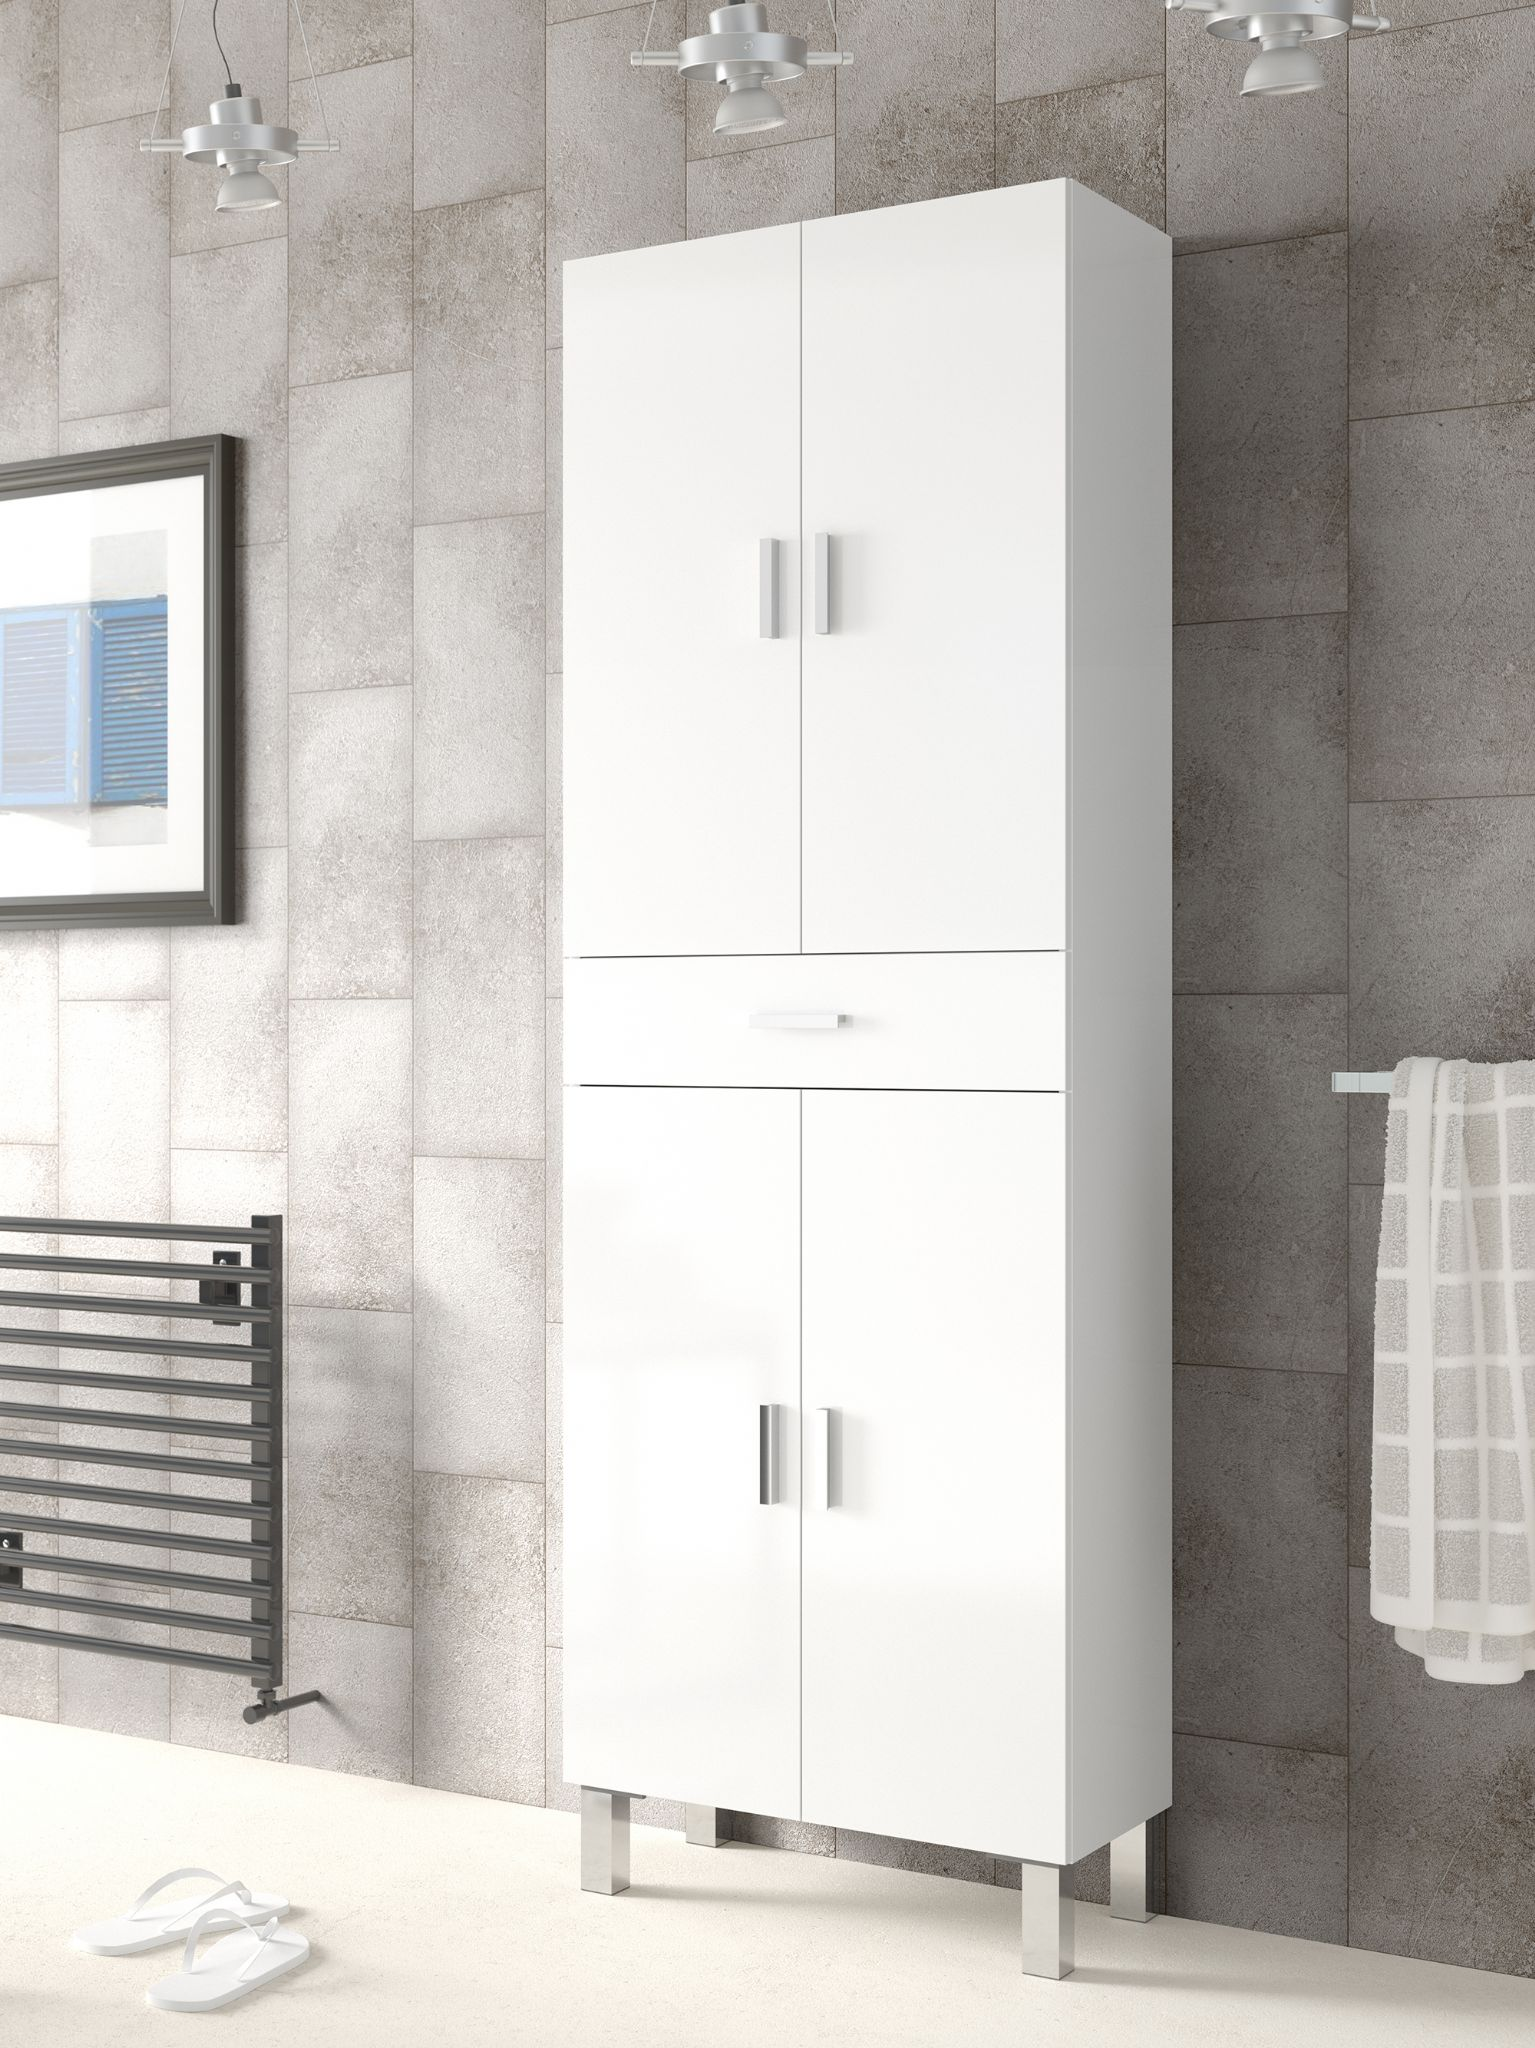 rimini tall bathroom cupboard white gloss. Black Bedroom Furniture Sets. Home Design Ideas